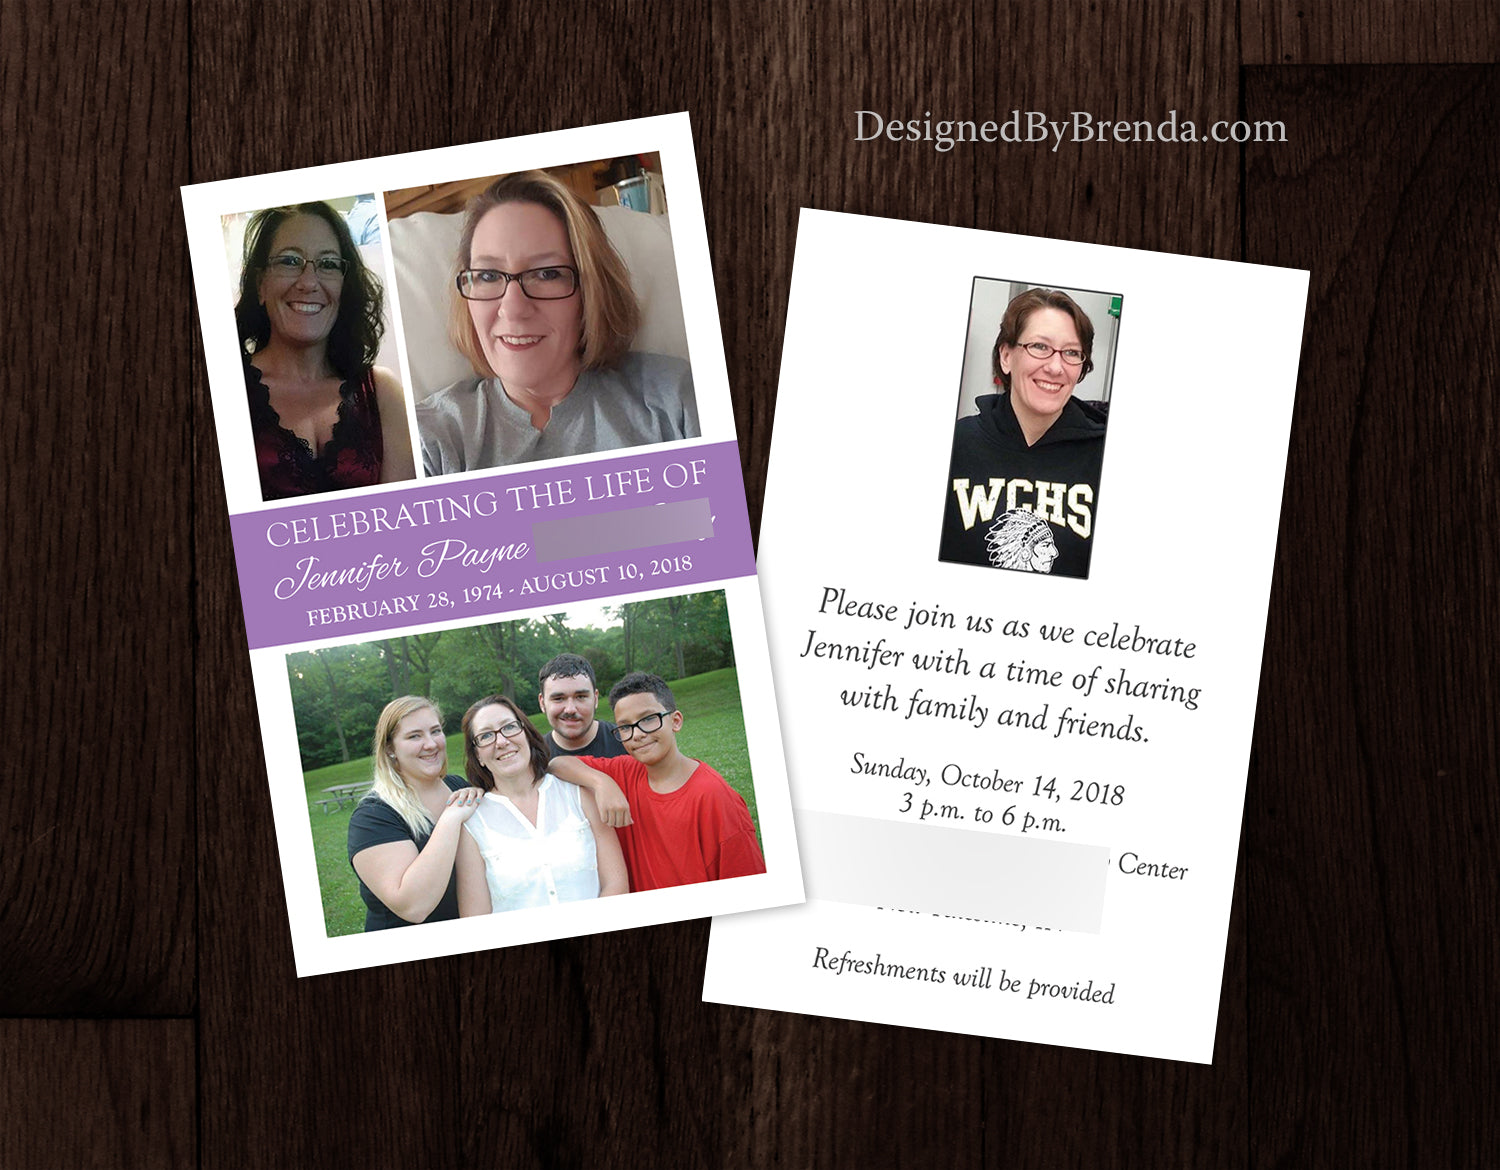 Celebration of Life Invitations with Custom Photo Collage